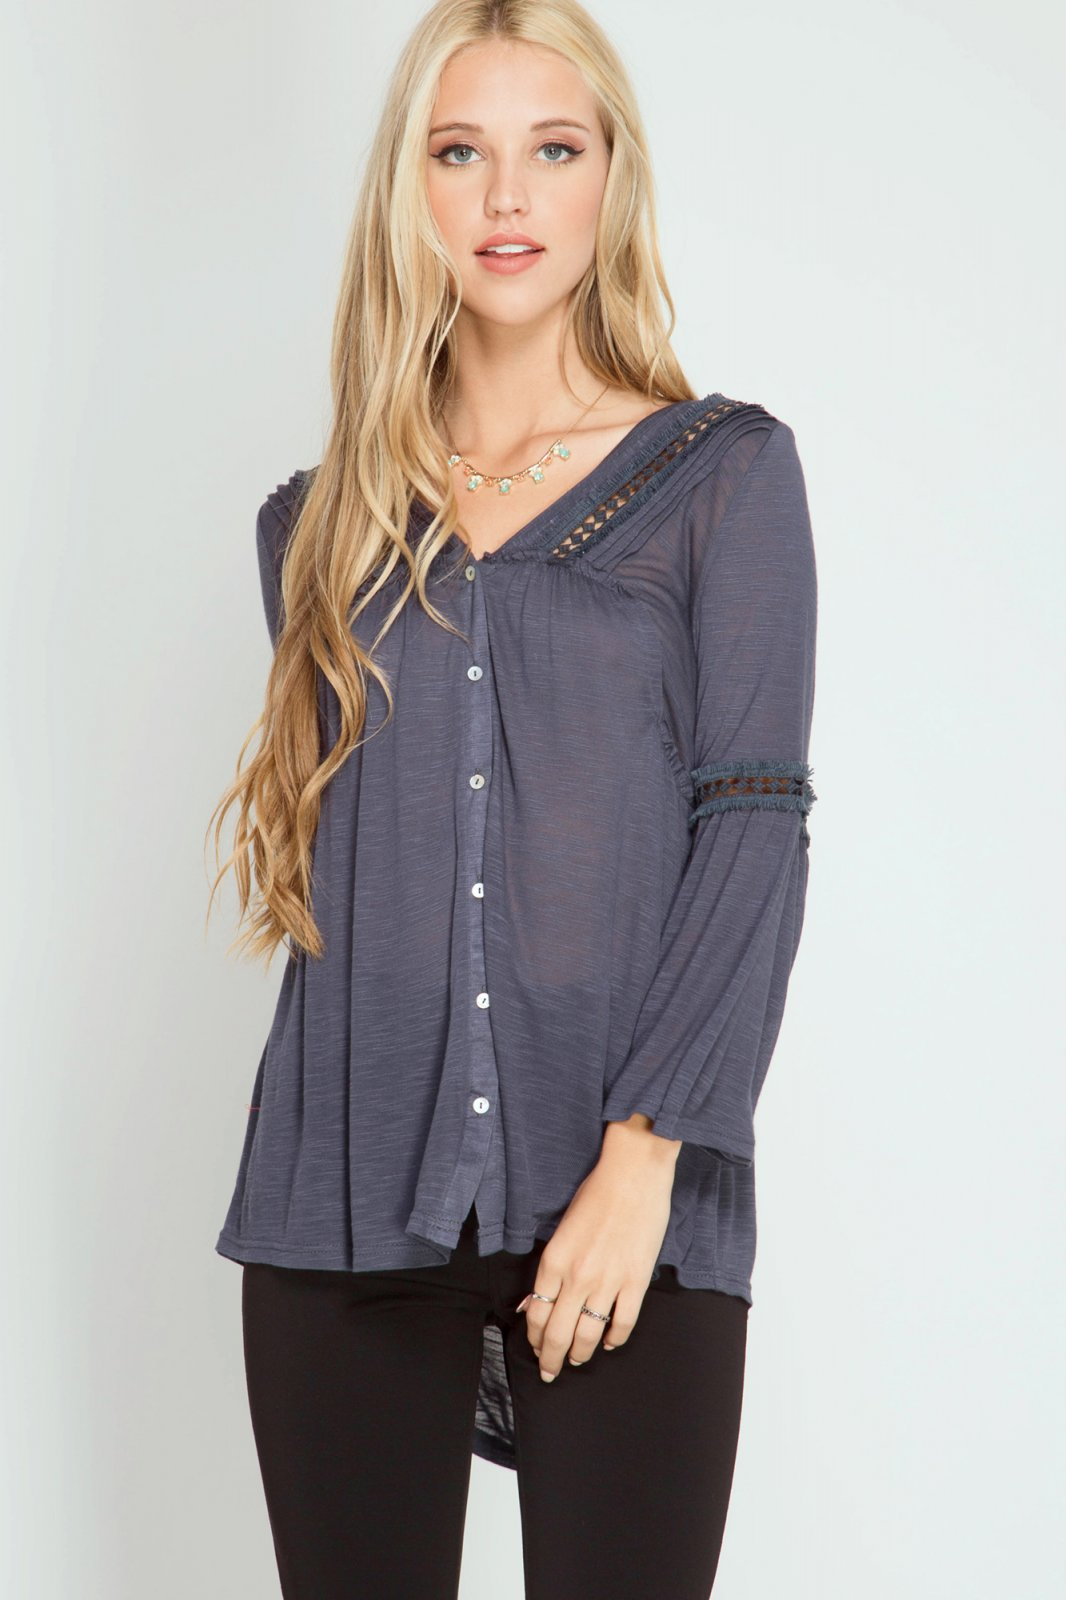 BLOUSE 3/4 Bell Sleeve CHARCOAL * RAYON